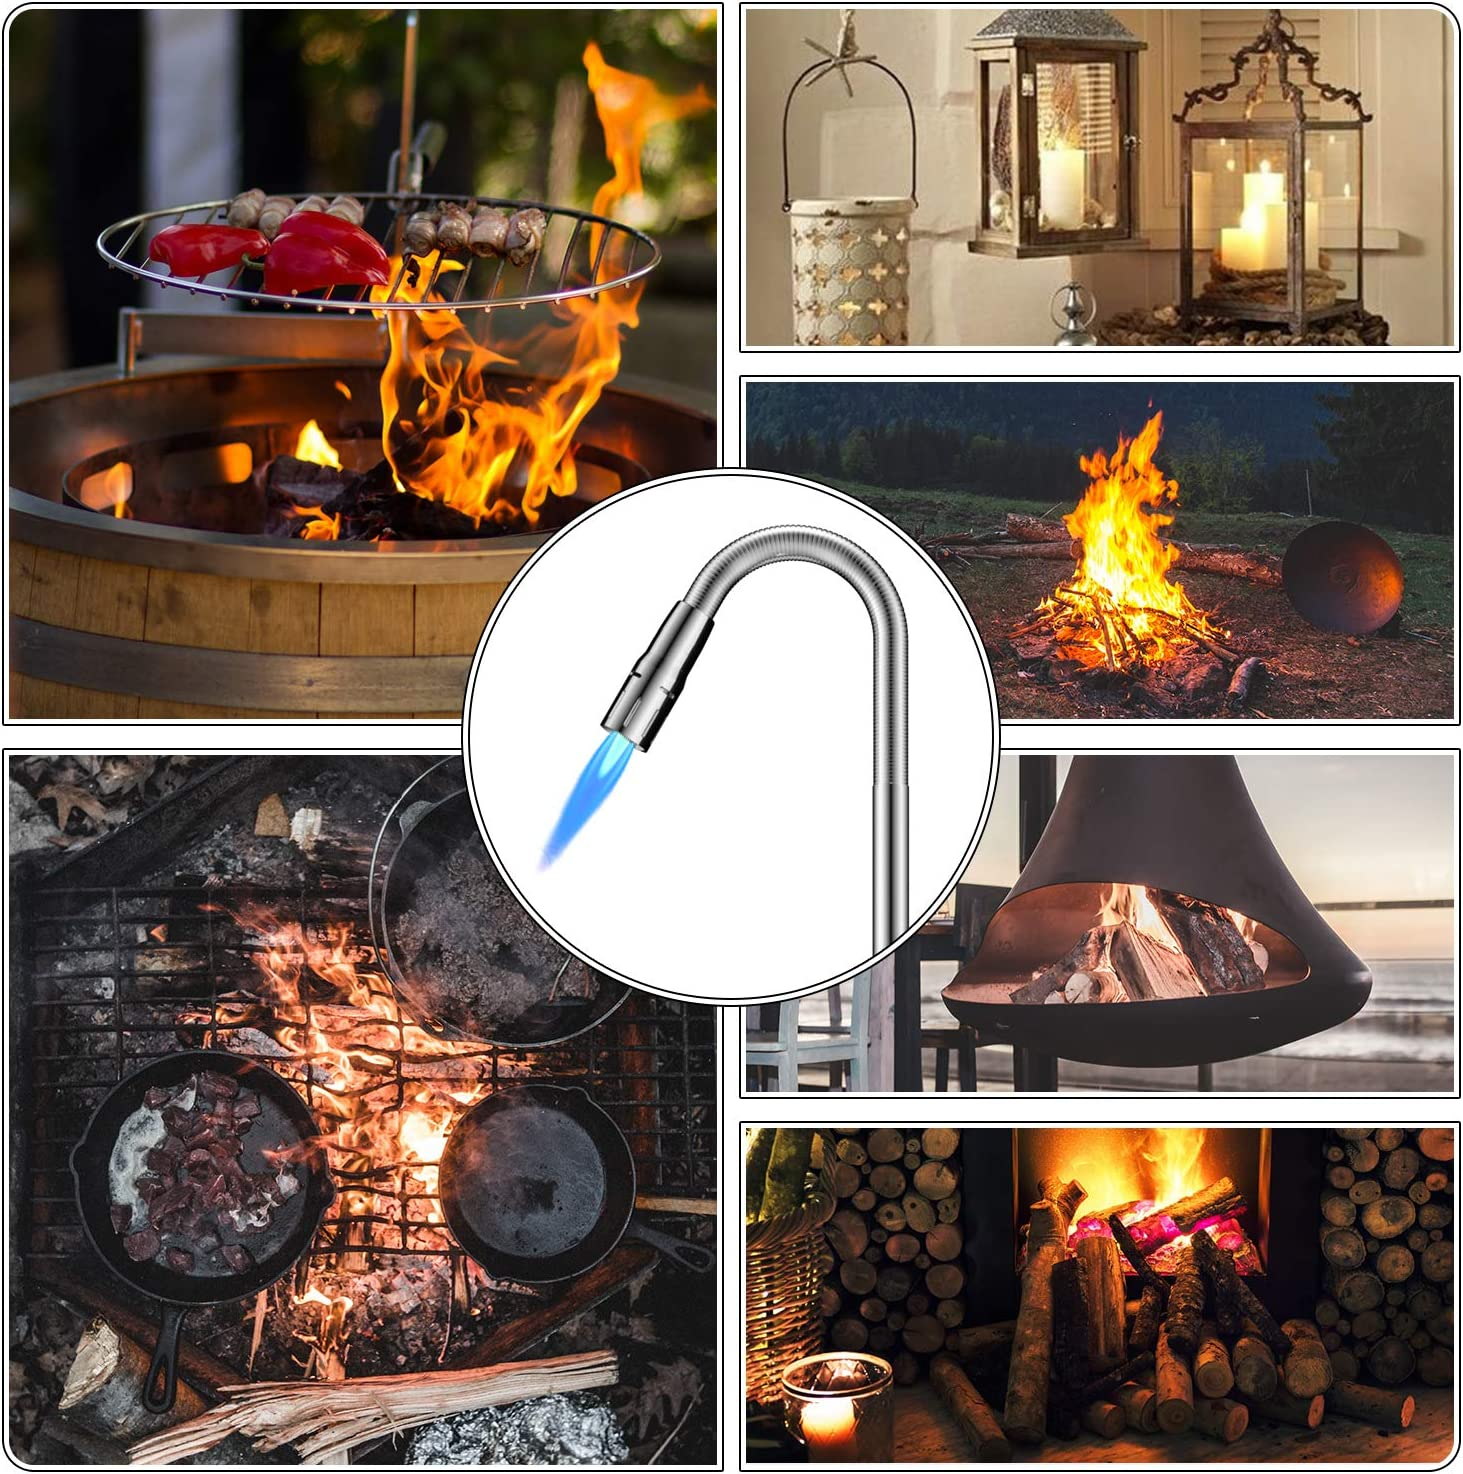 NO Butane PREFILLED Fire Lighter Jet Flame Butane Gas Windproof Refillable Long Reach Safety Igniter for Open Fires Gas Hob Stove Oven Wood Burners Fireplace Grills BBQ Cookers Camping Firework